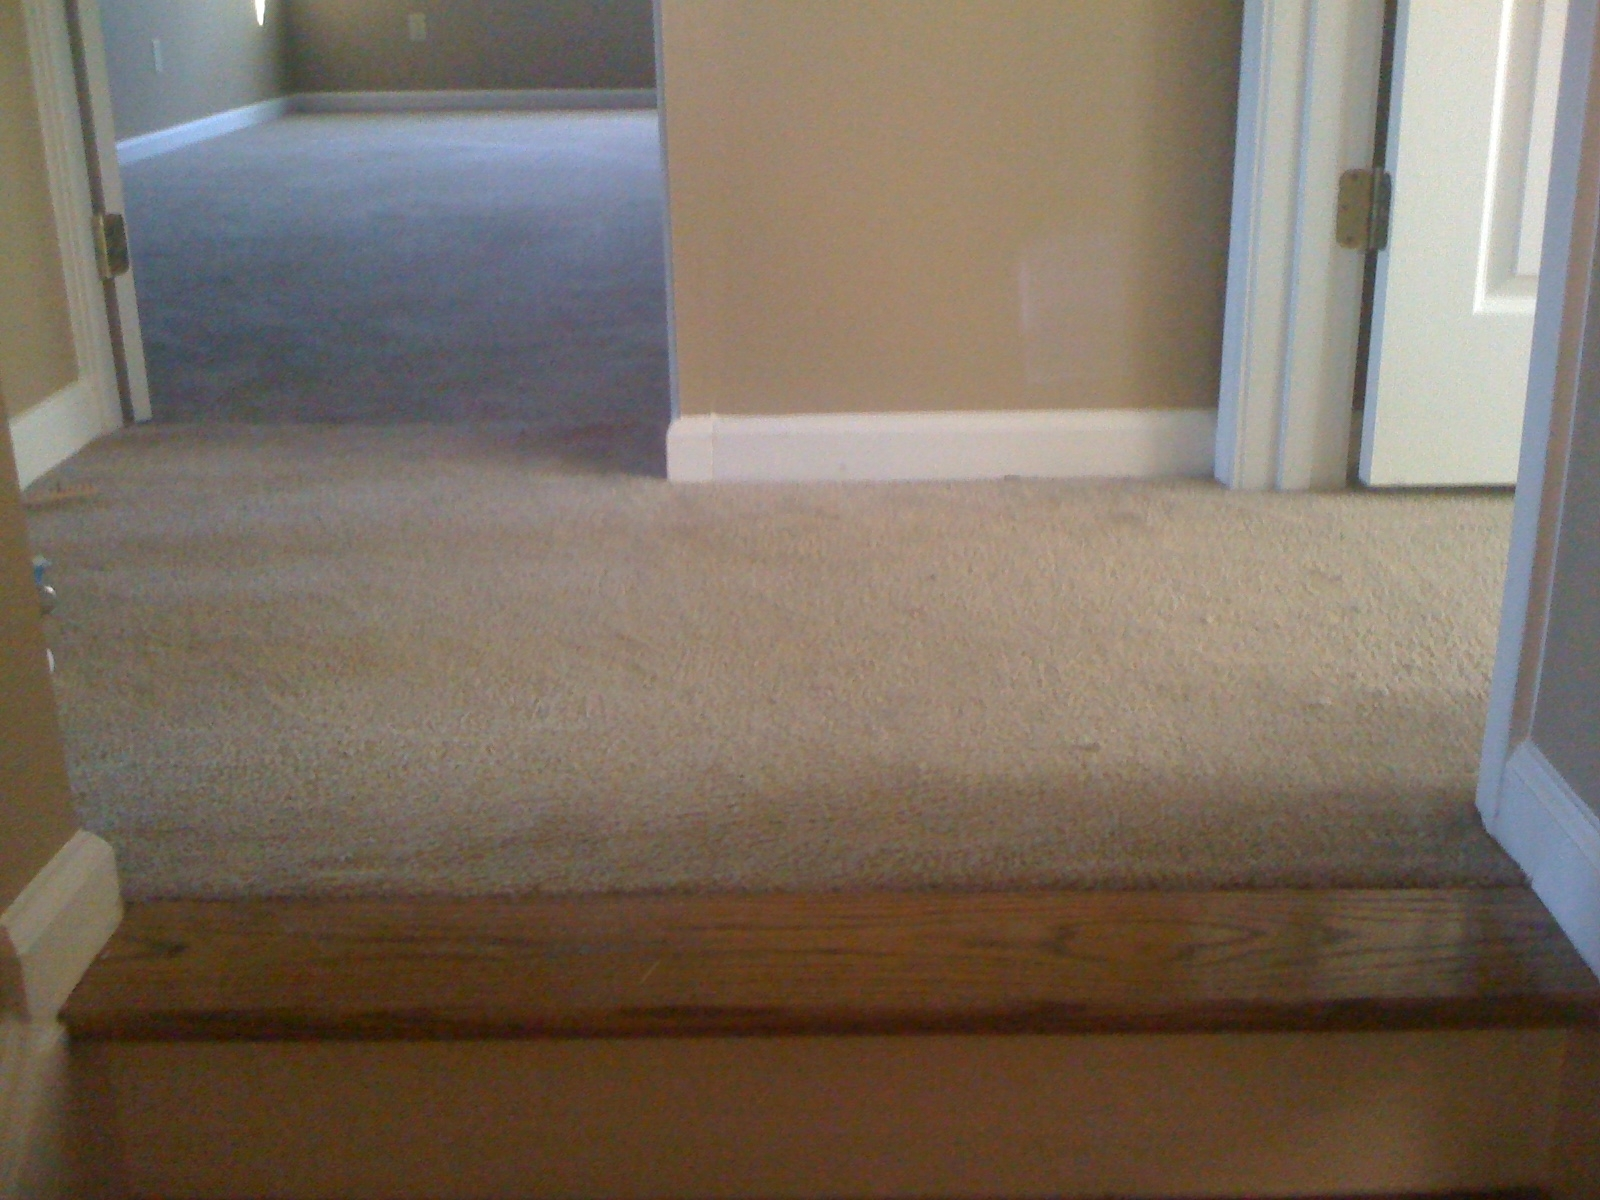 Transition Wood Floor To Carpet Stairs Wood Flooring | Carpeted Stairs To Wood Floor Transition | Laminate Flooring | Staircase | Hall Carpet Transition | Metal Edge Transition | Wooden